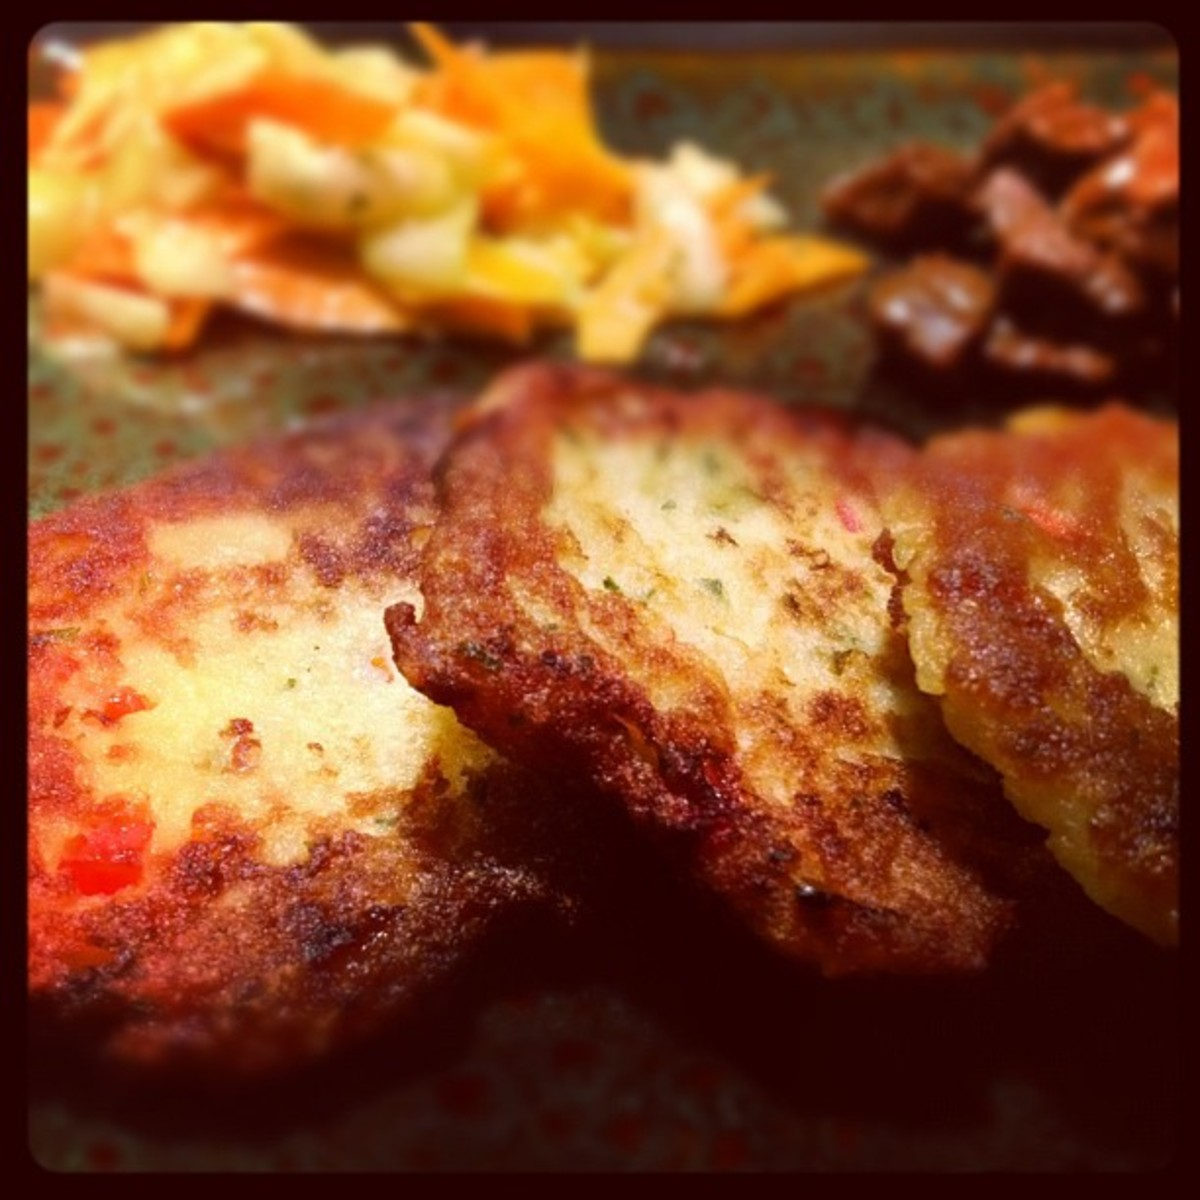 How Do You Make Potato Pancakes?